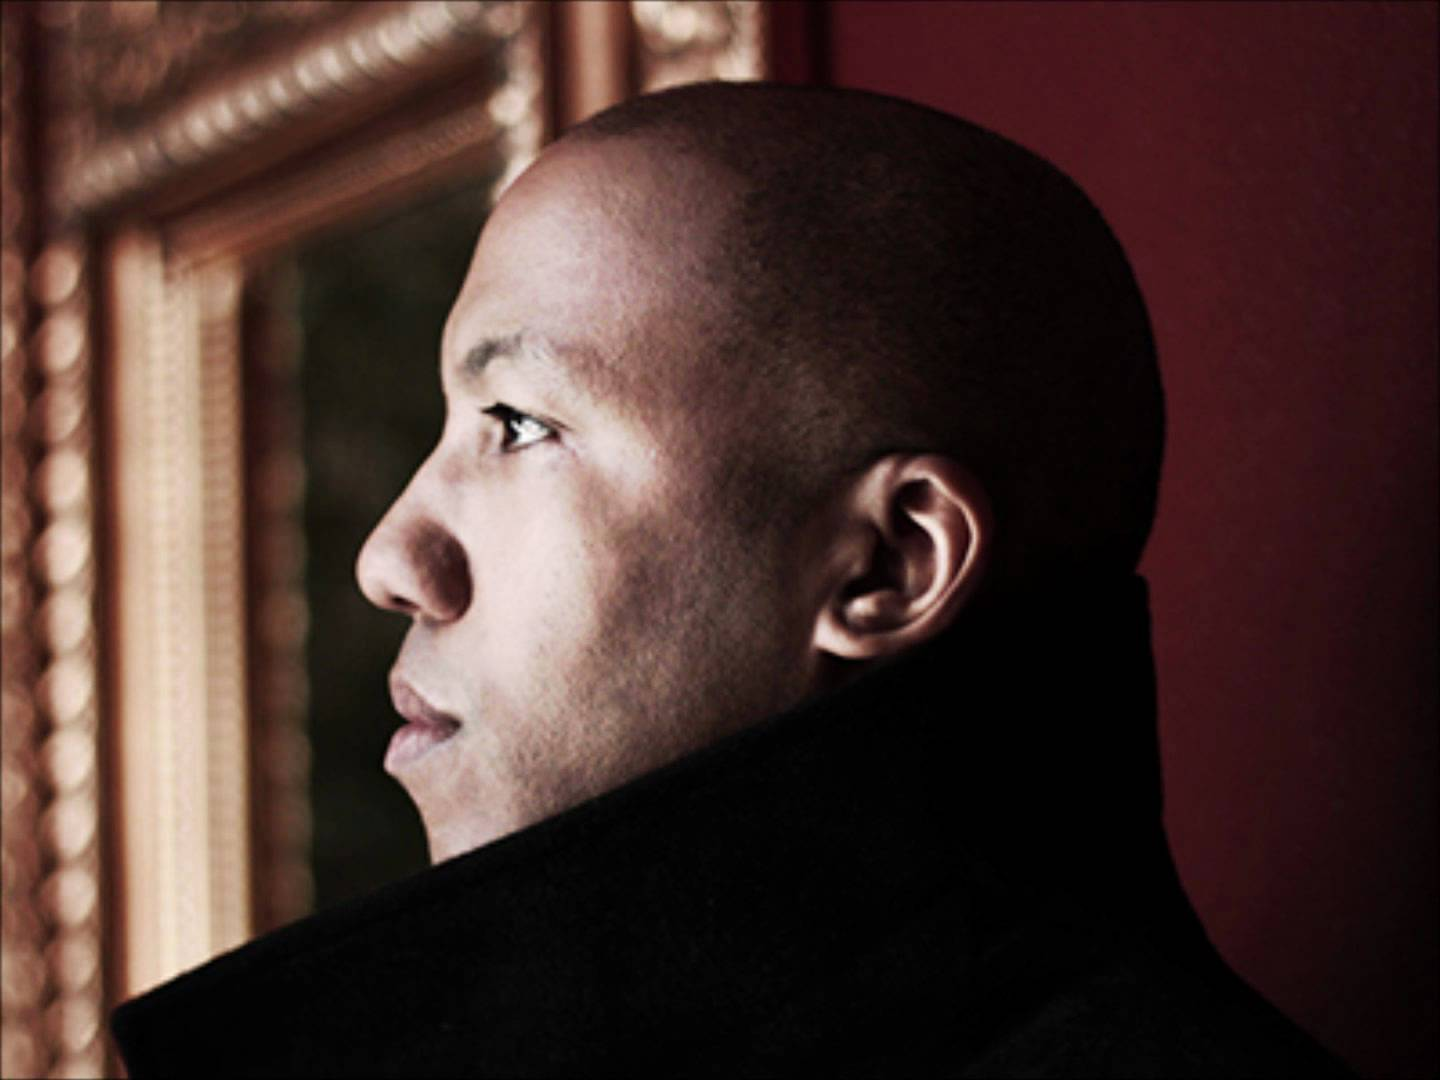 Vikter Duplaix focusing his attention on something and looking hot at the same time.jpg